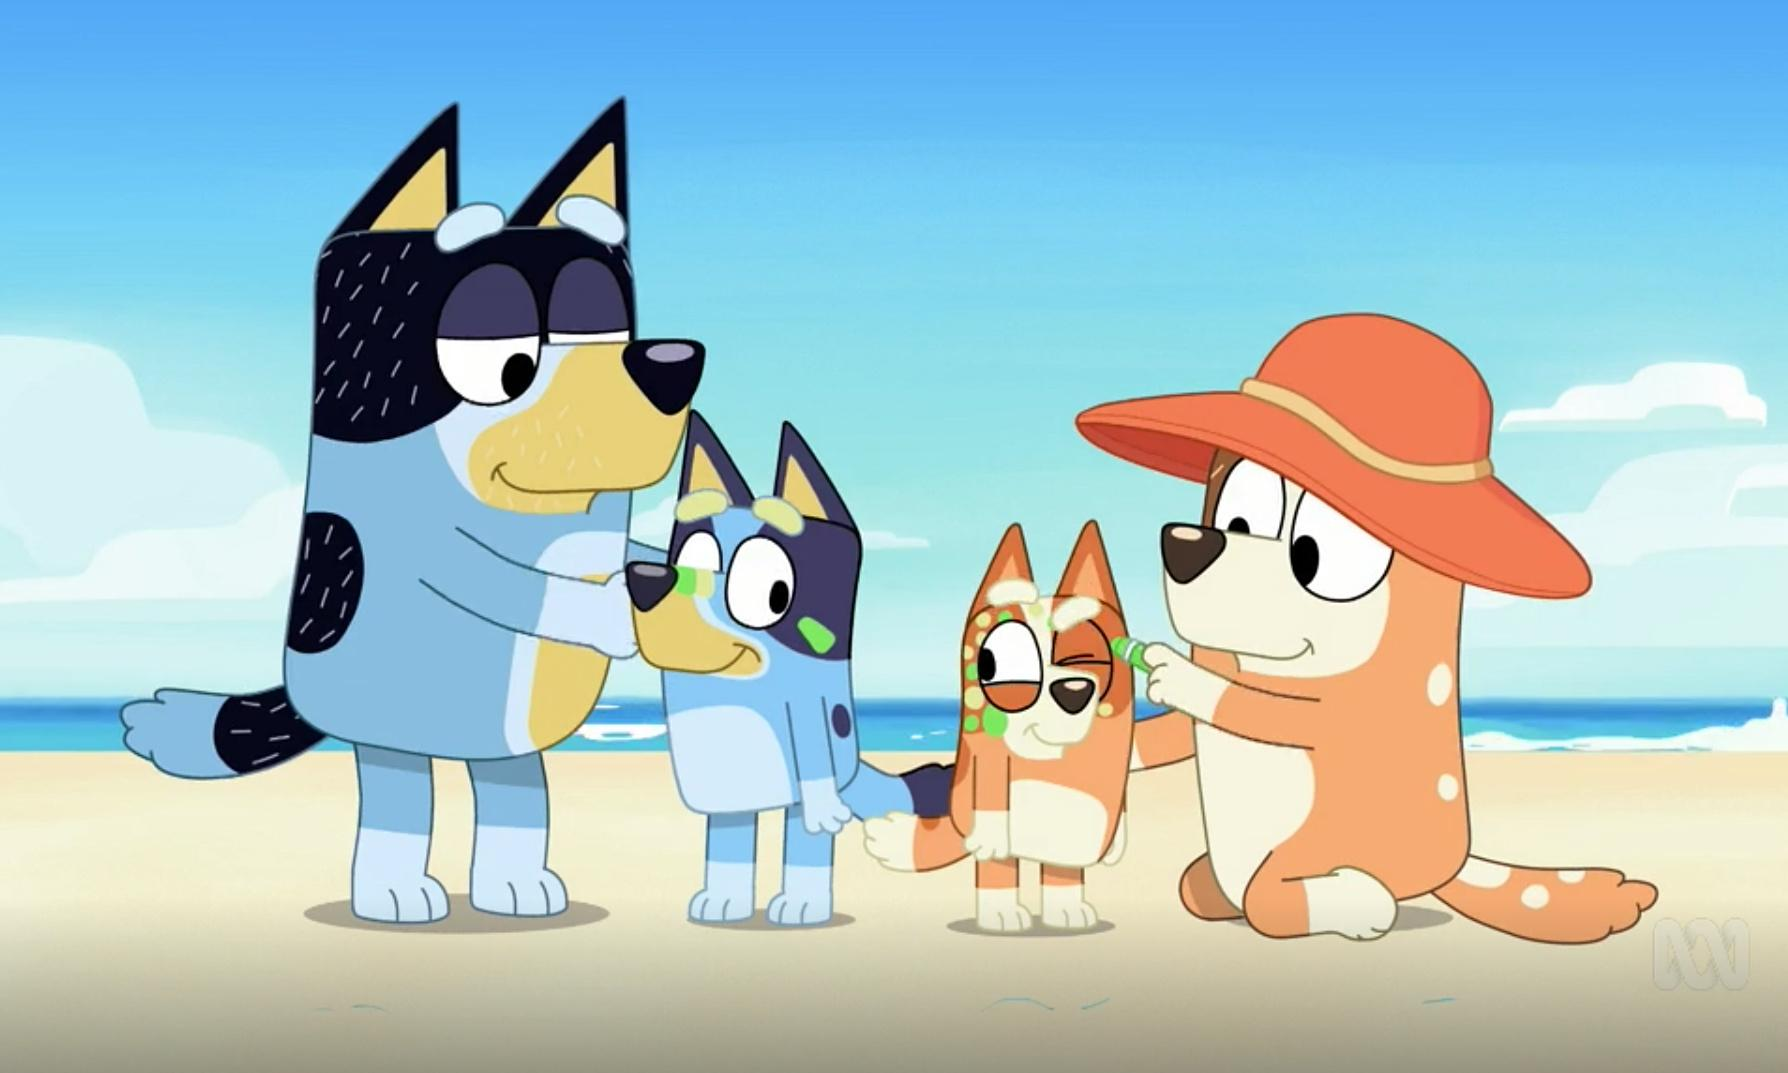 Australia's Bluey goes global after fetching deal with Disney